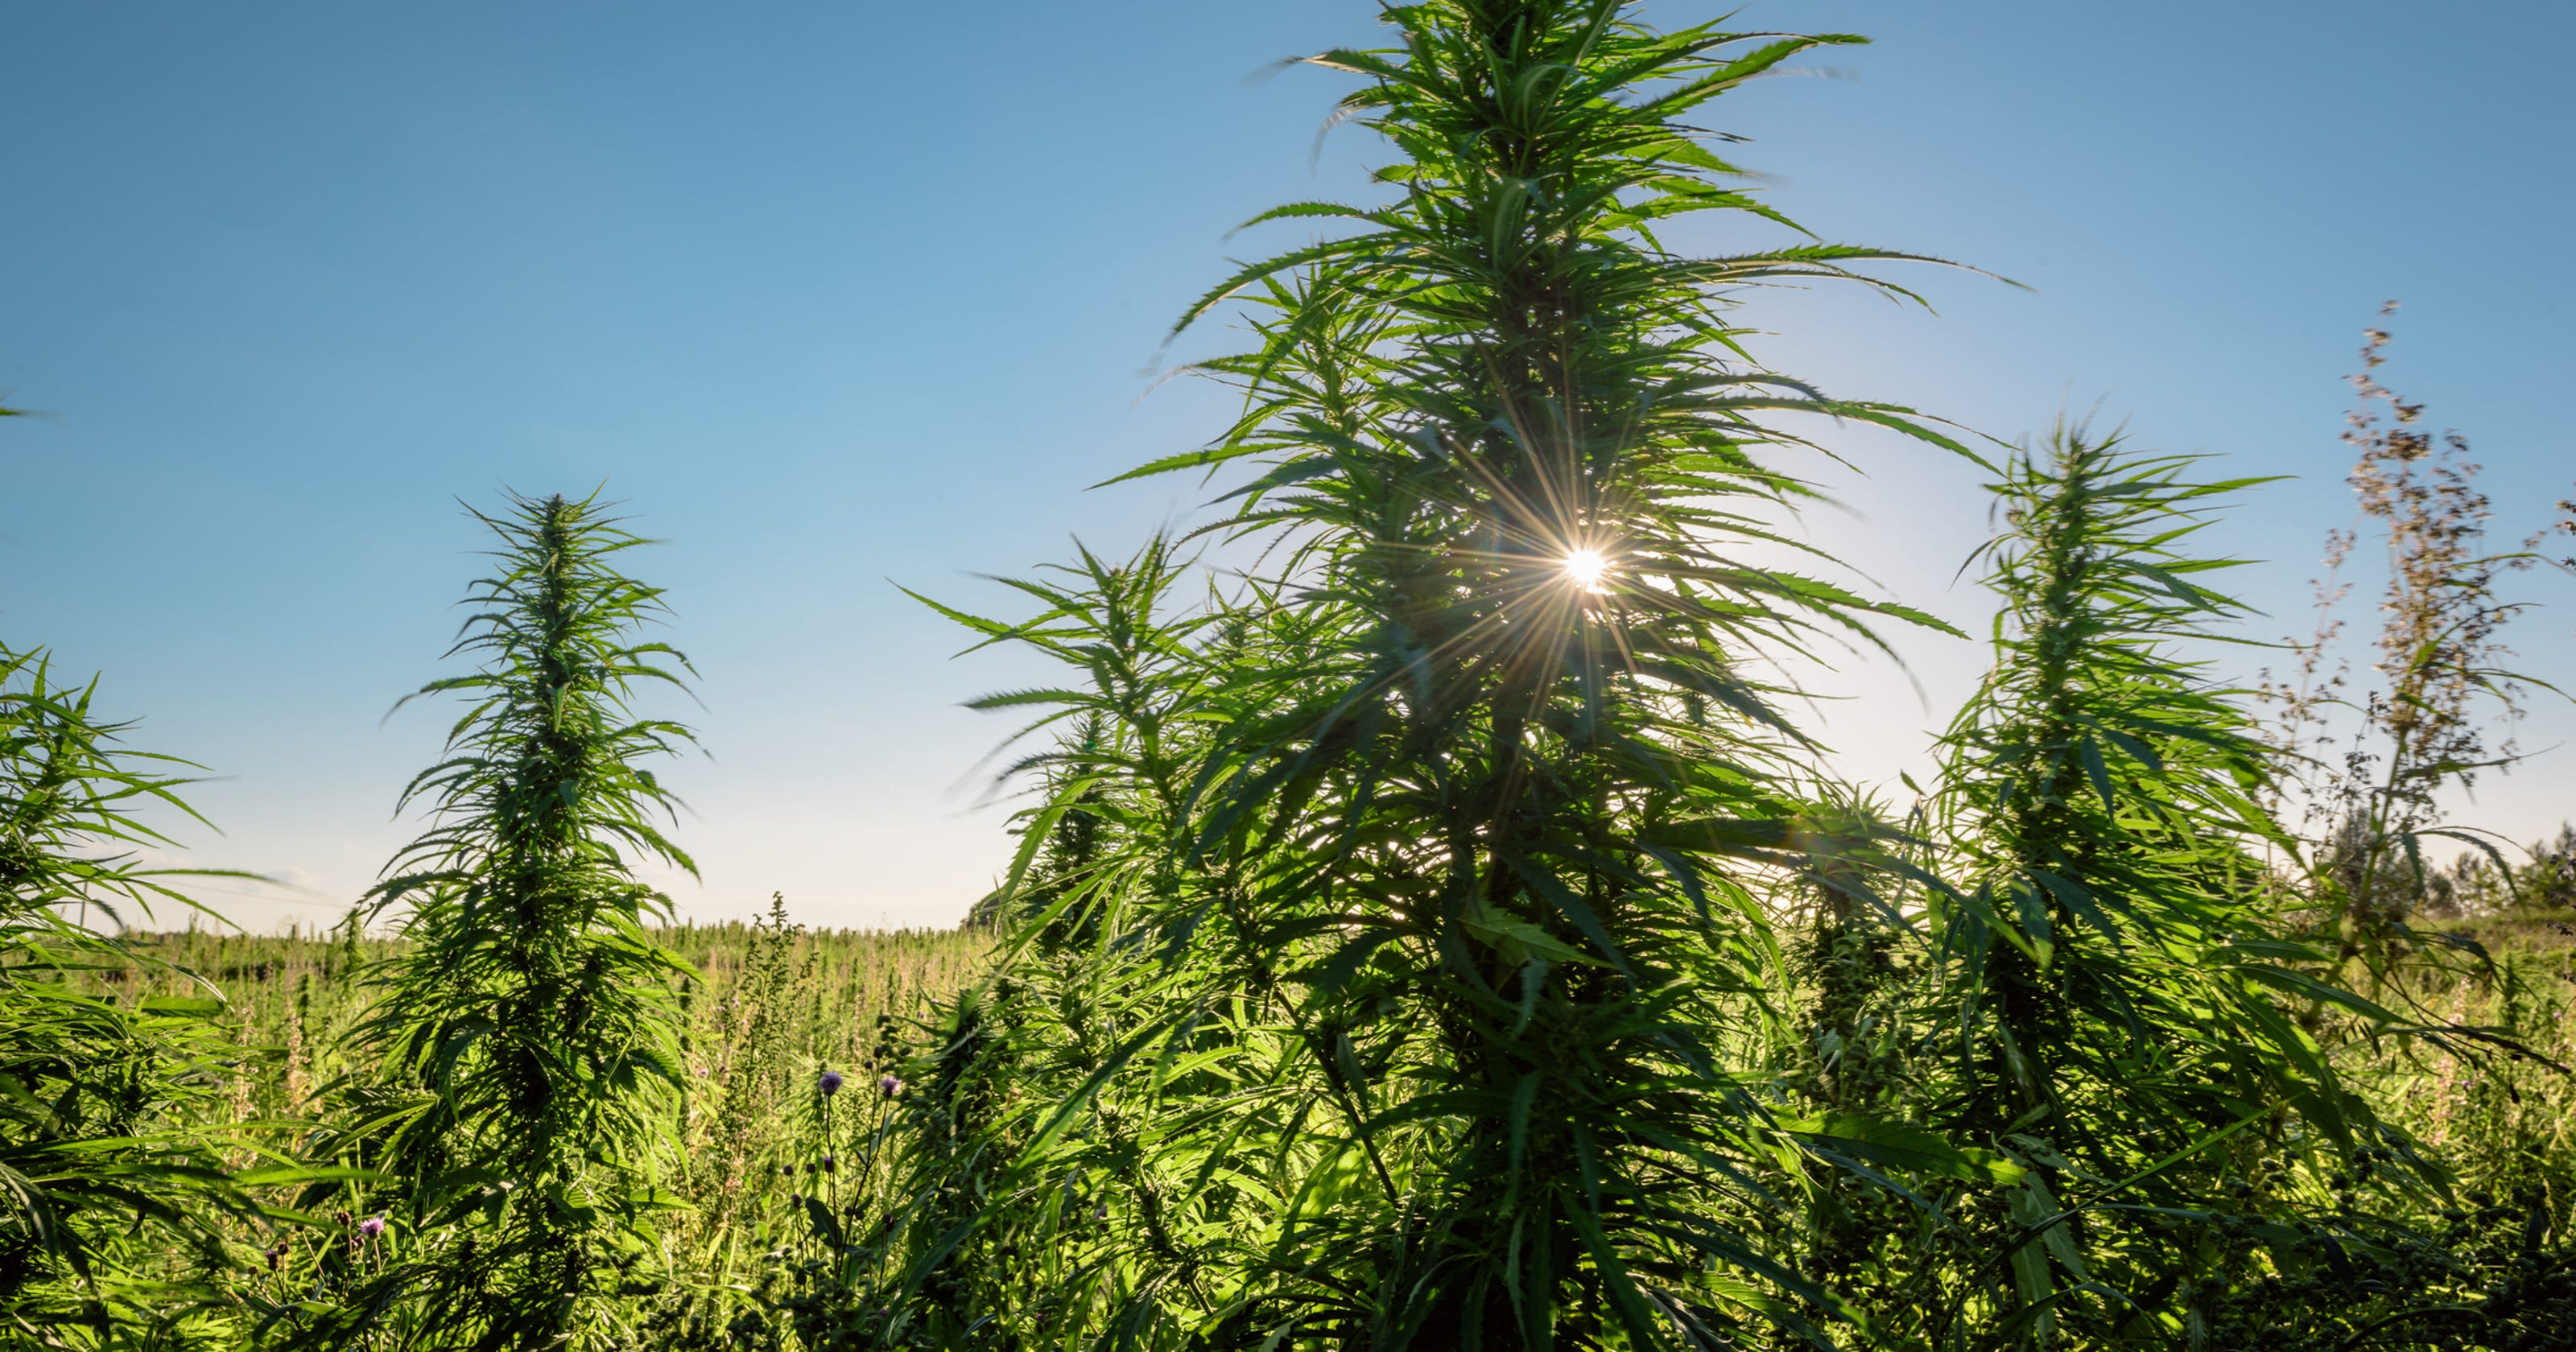 Bank hesitates to grant loan to hemp farm, cites legality